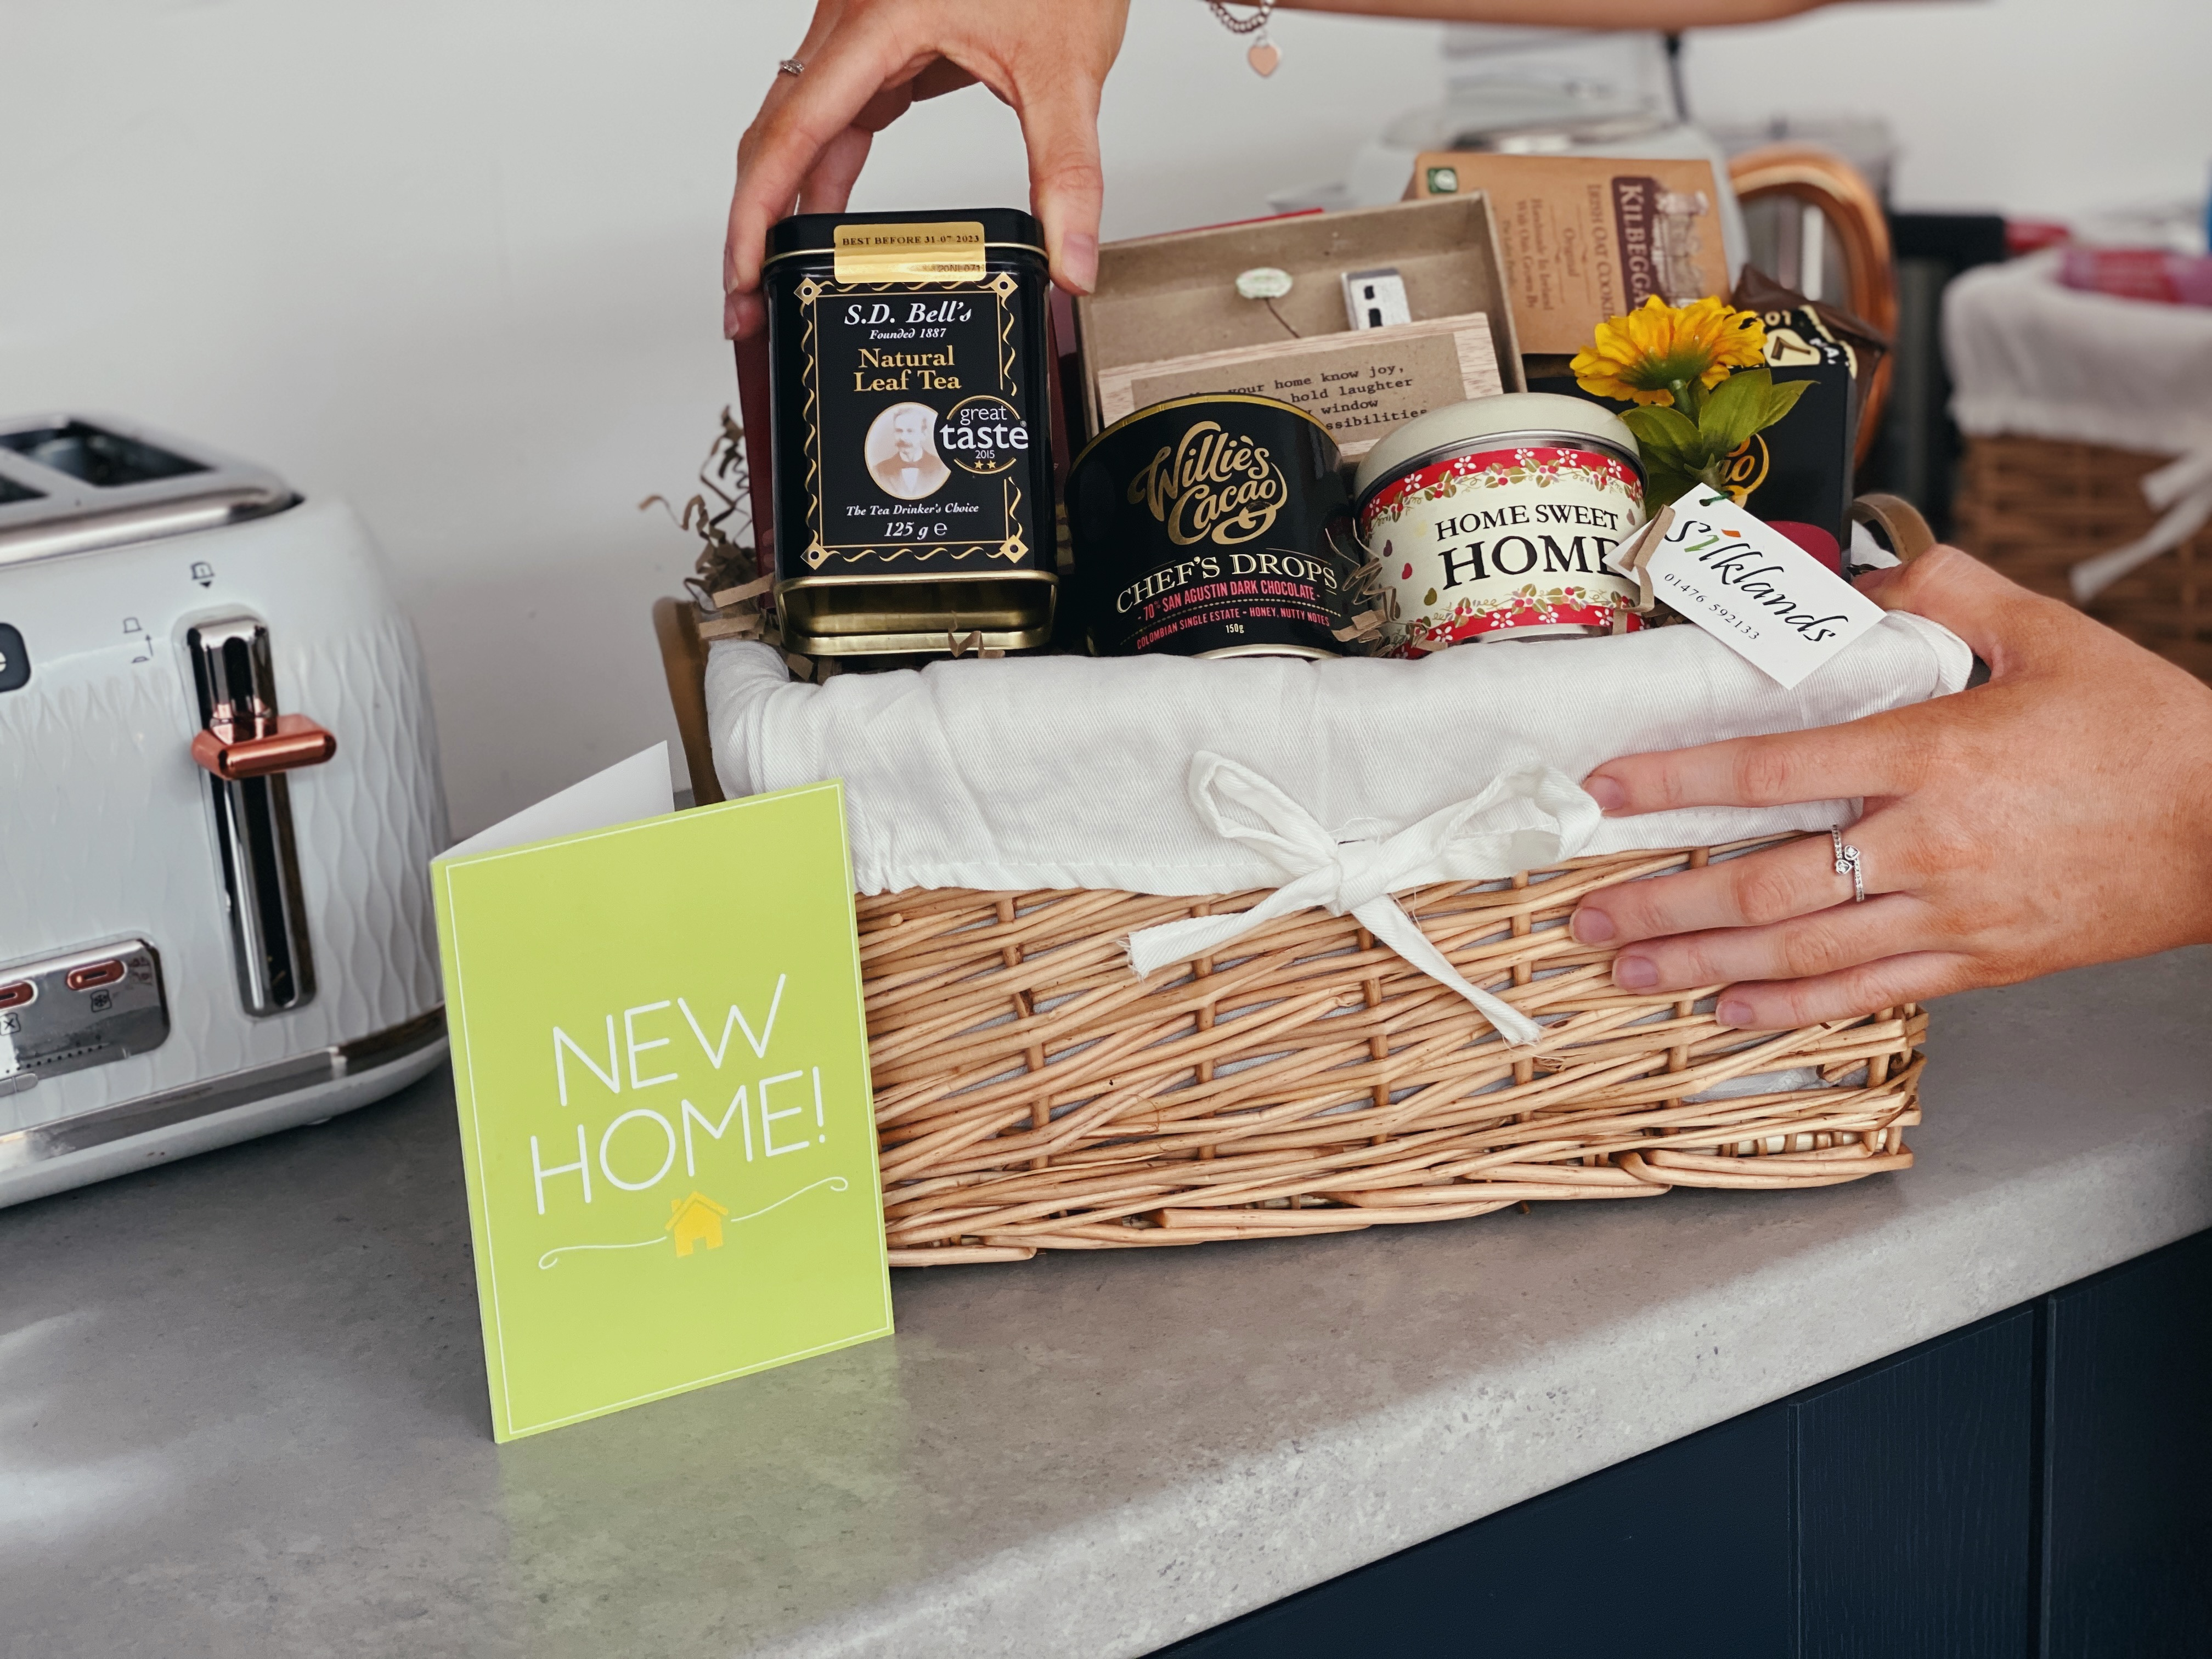 The Do's and Don'ts of Housewarming Gifts